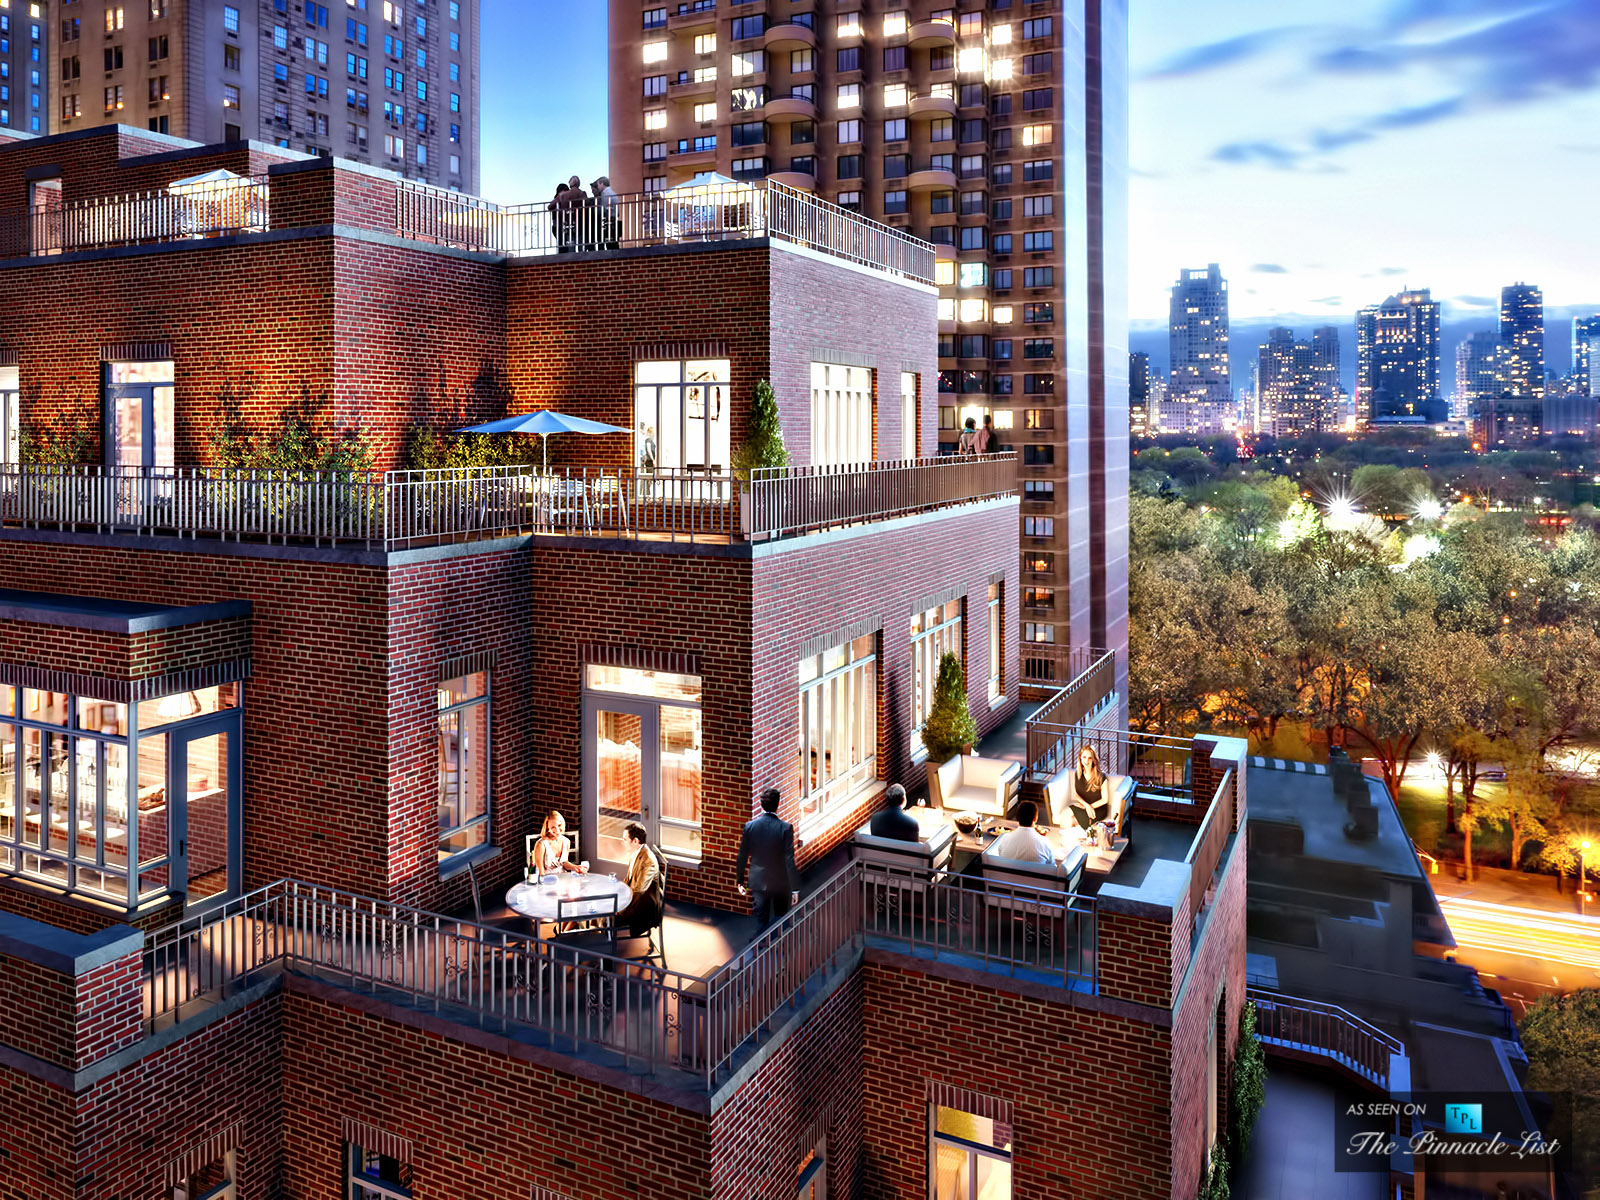 The Carlton House - Top 5 Luxury Real Estate Projects to Watch in New York City